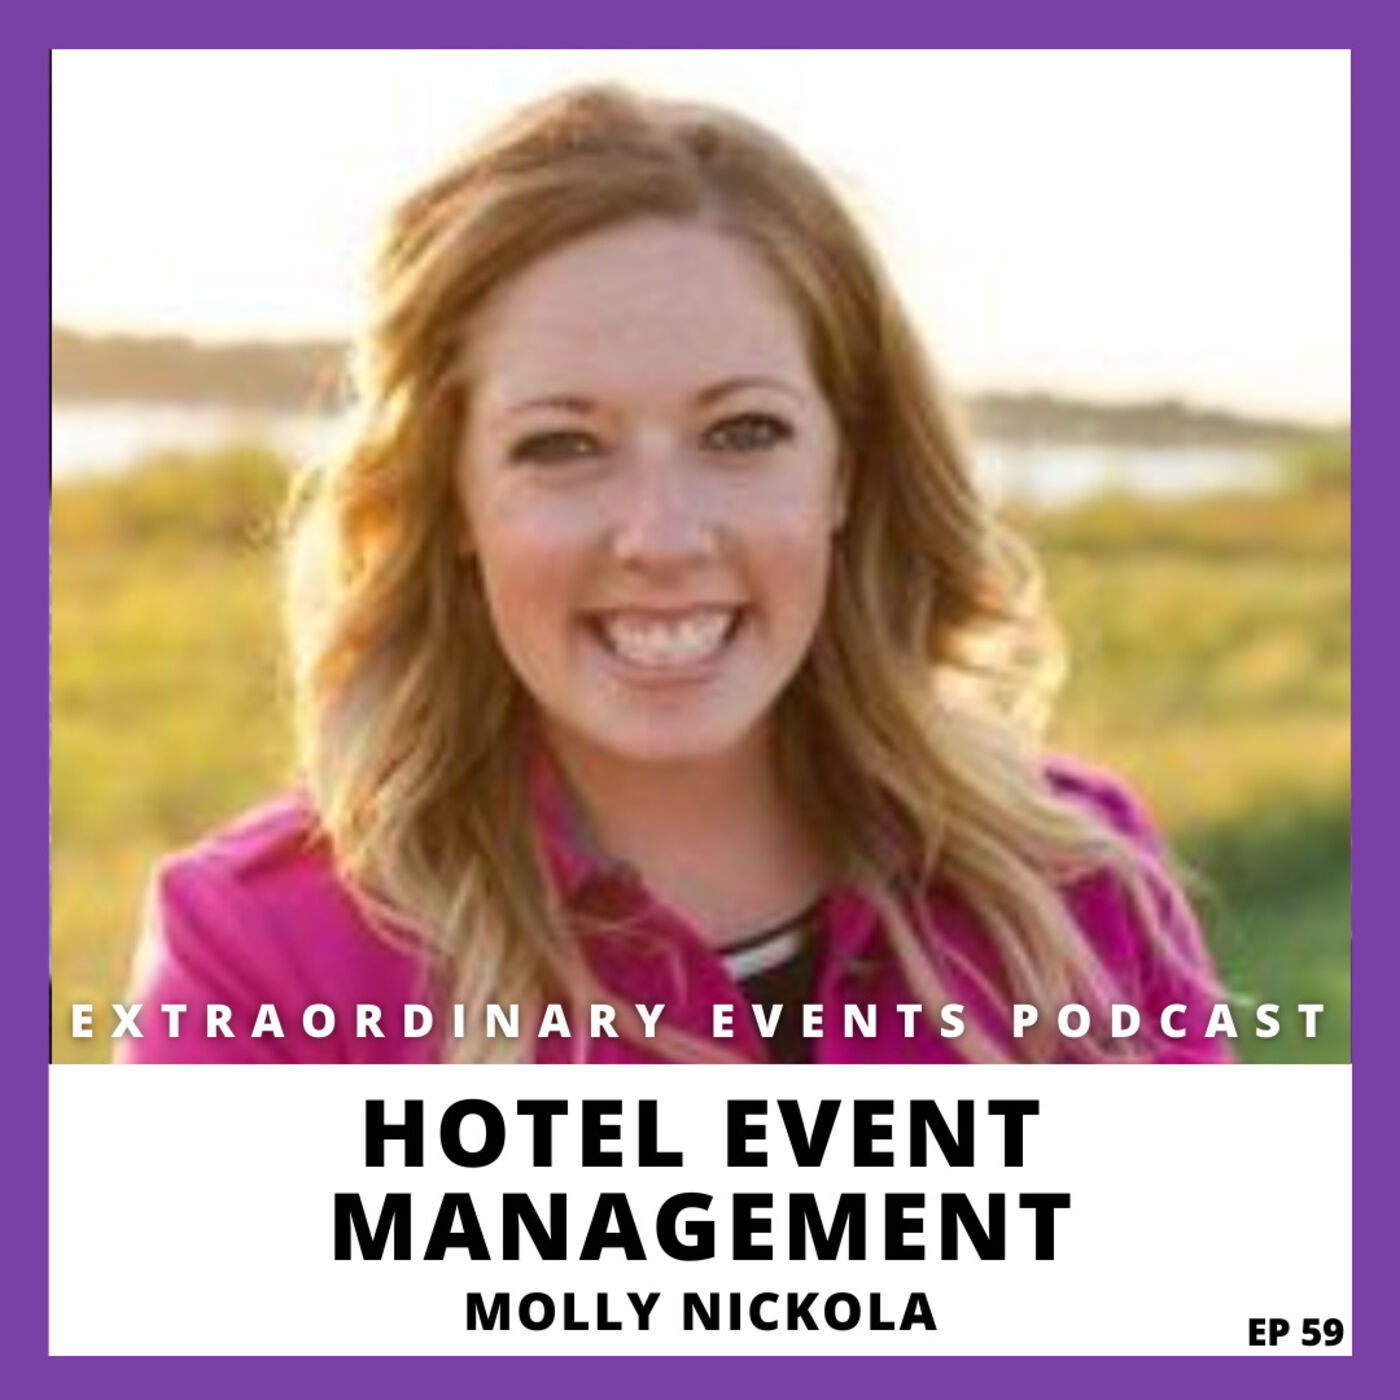 Ep 59: Hotel Event Management with Molly Nicola